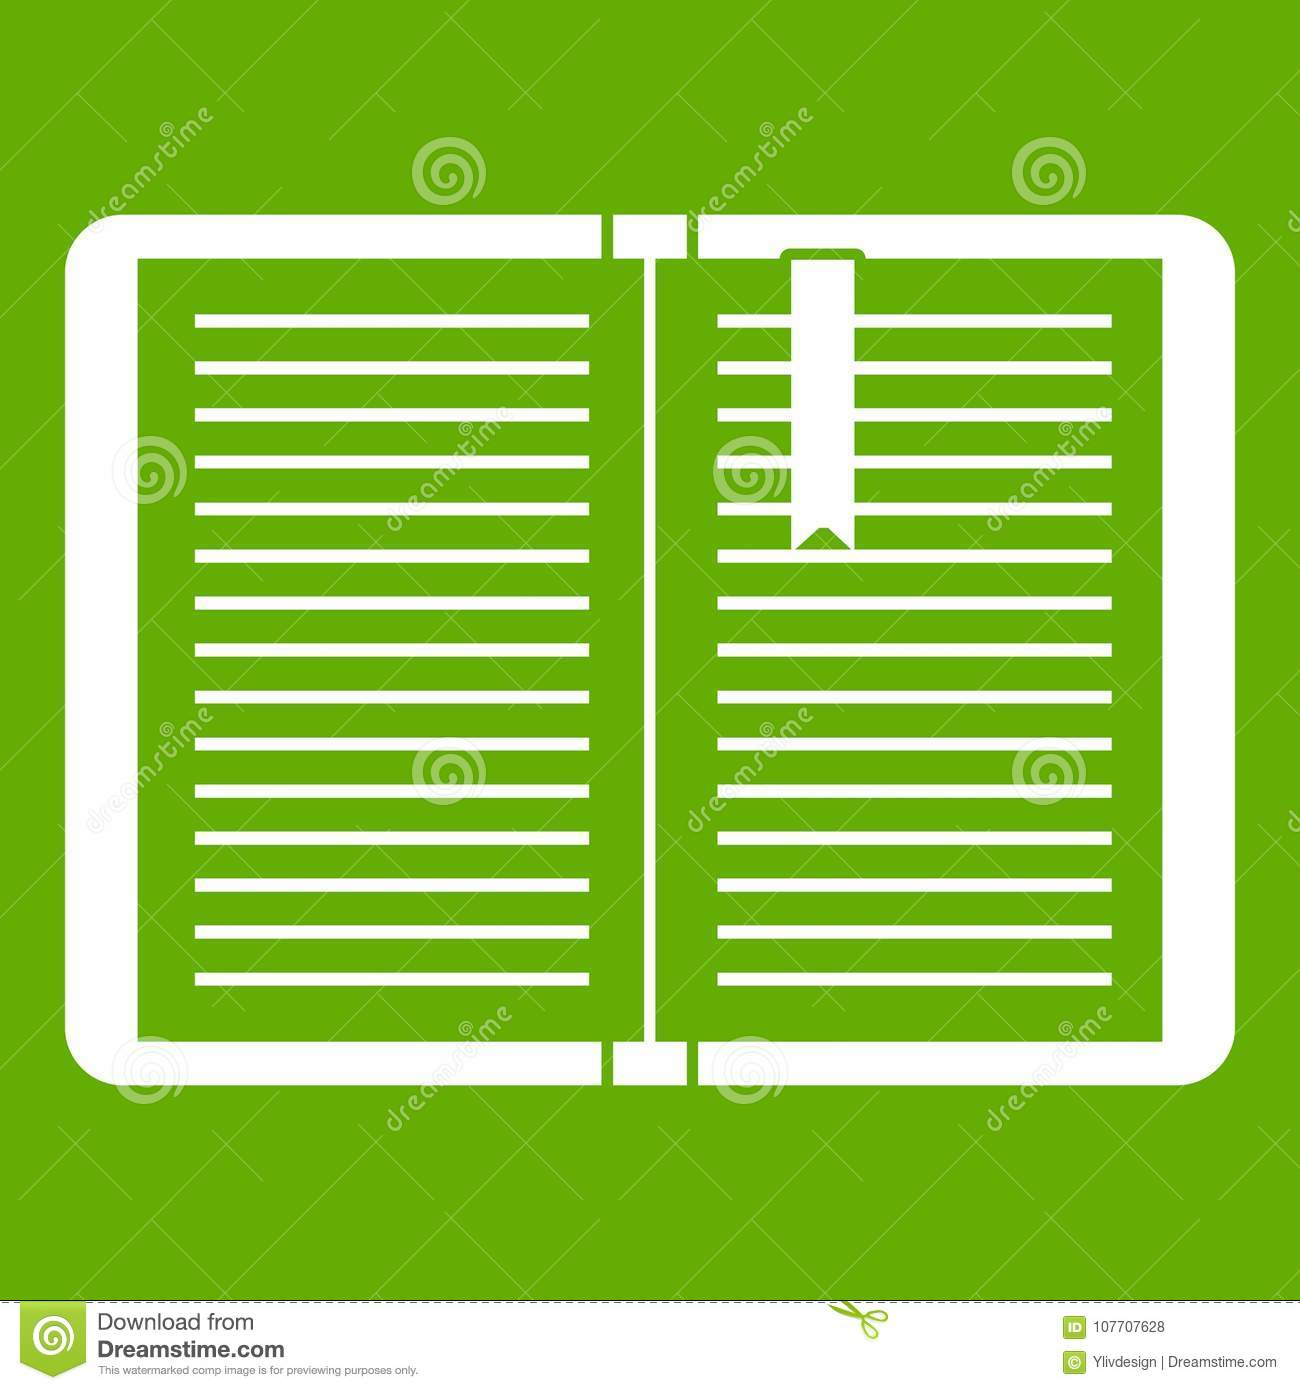 open tutorial with bookmark icon green stock vector - illustration